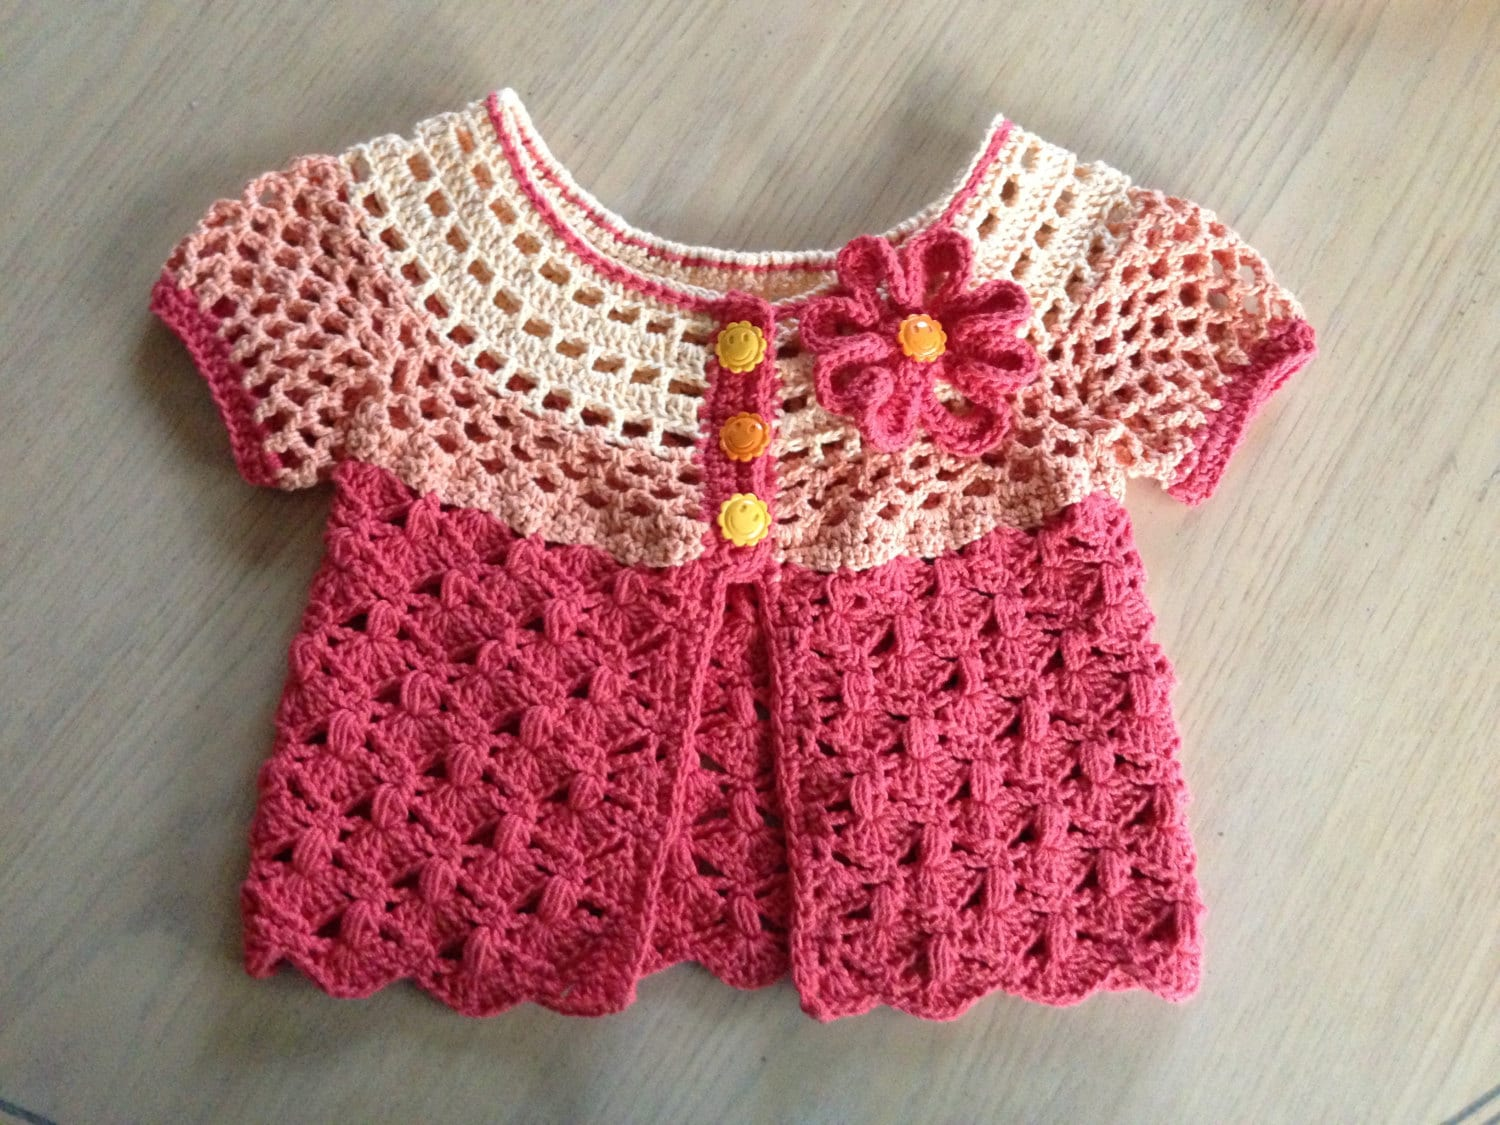 Crochet pattern for baby cardigan sweater sunburst cardigan zoom bankloansurffo Choice Image